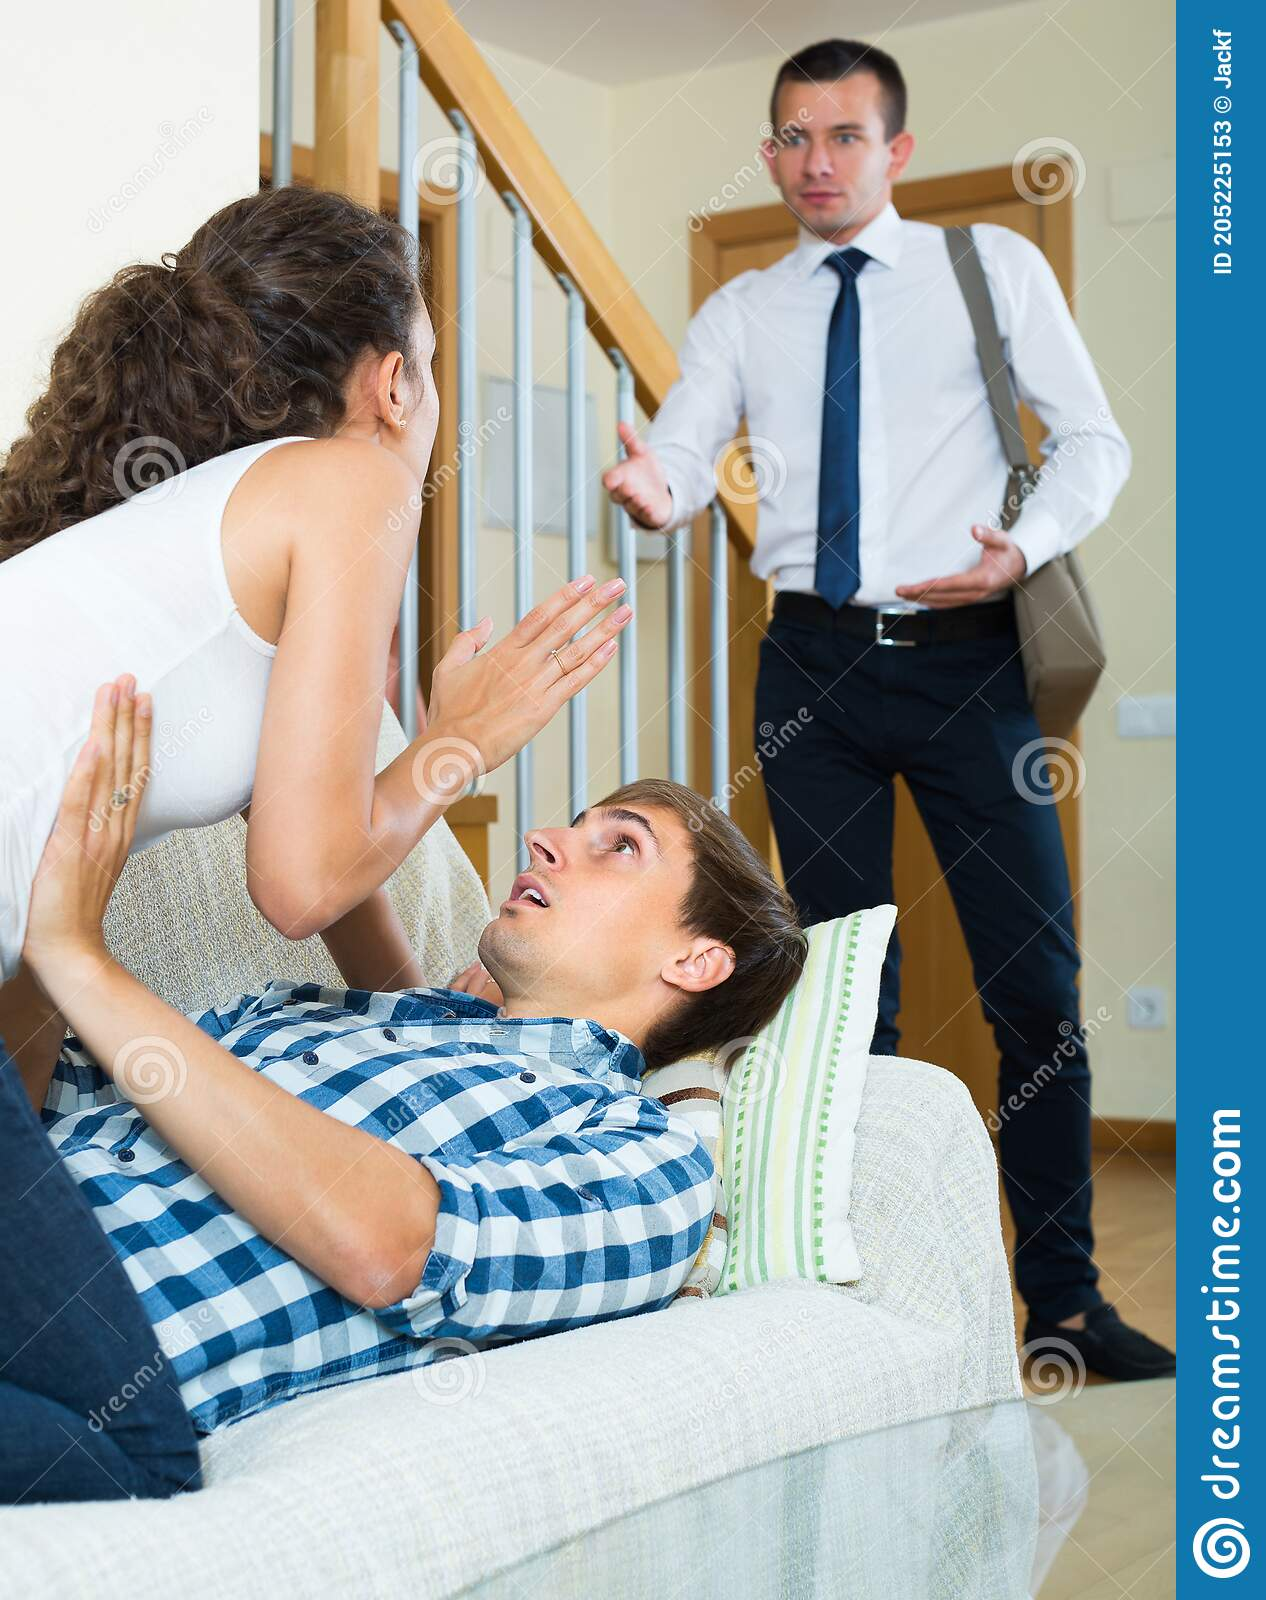 Cheating Wife Pic : cheating, Cheating, Spouse, Photos, Royalty-Free, Stock, Dreamstime